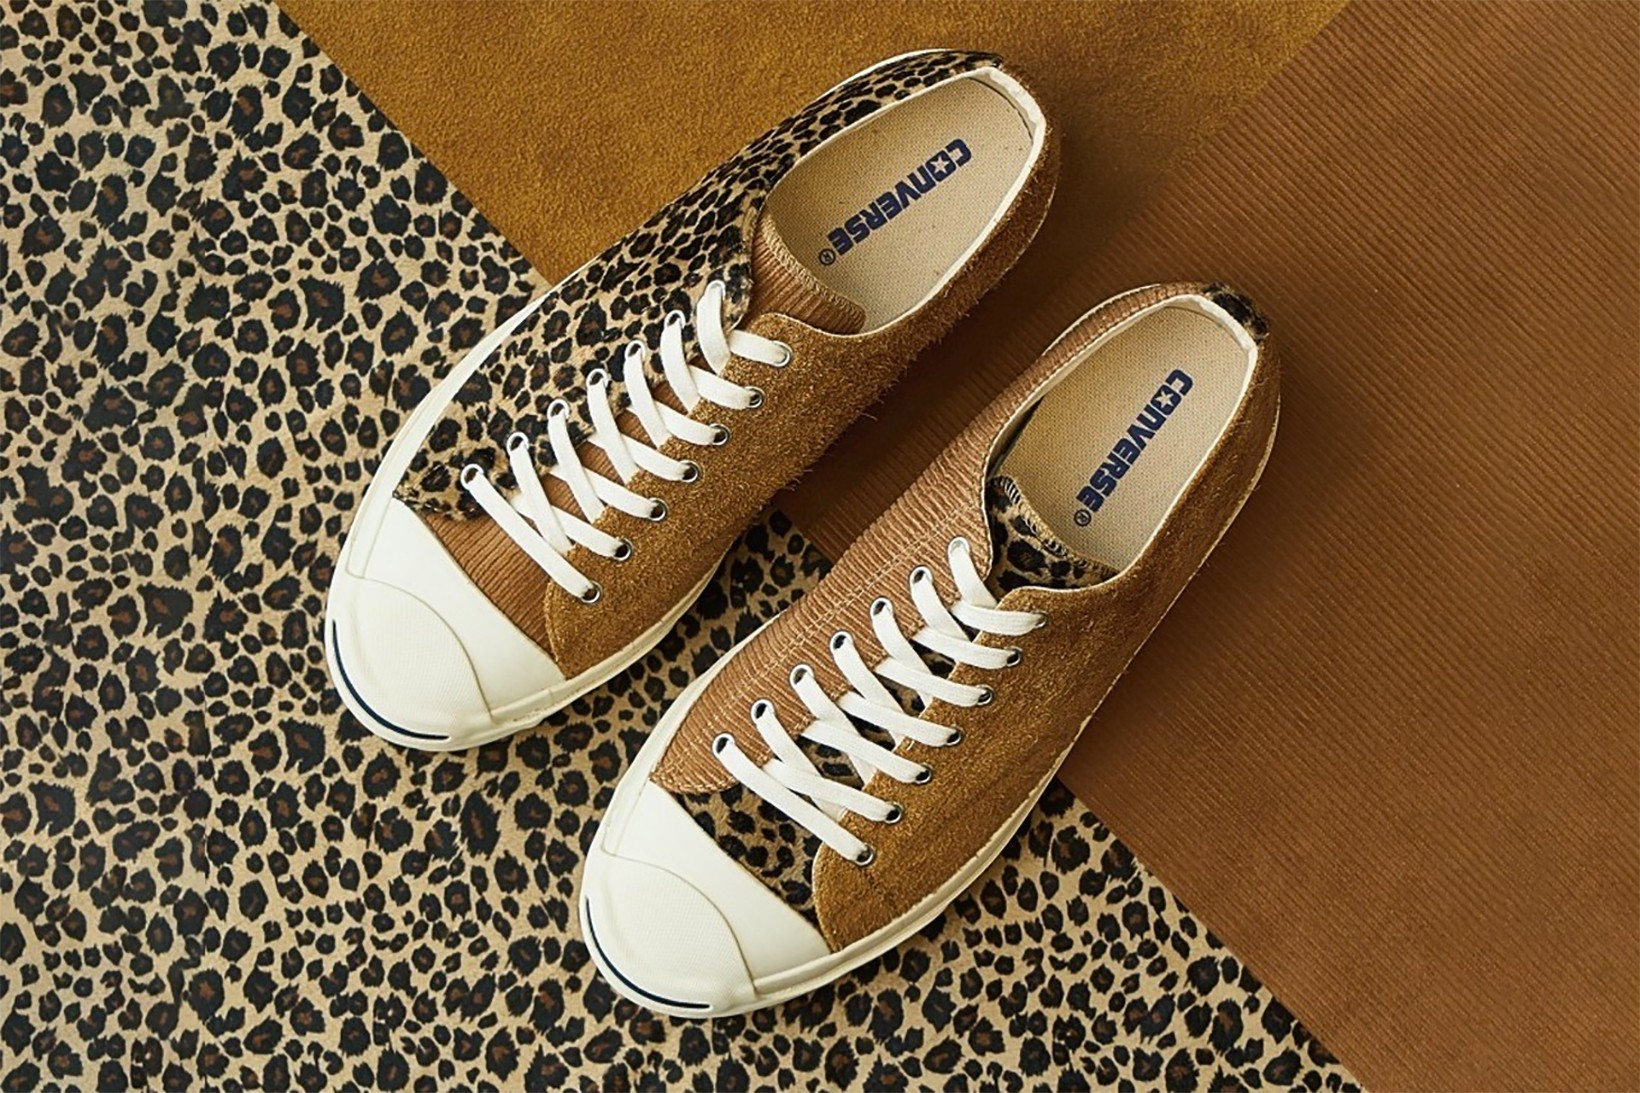 BILLY'S x Converse Leopard Jack Purcell